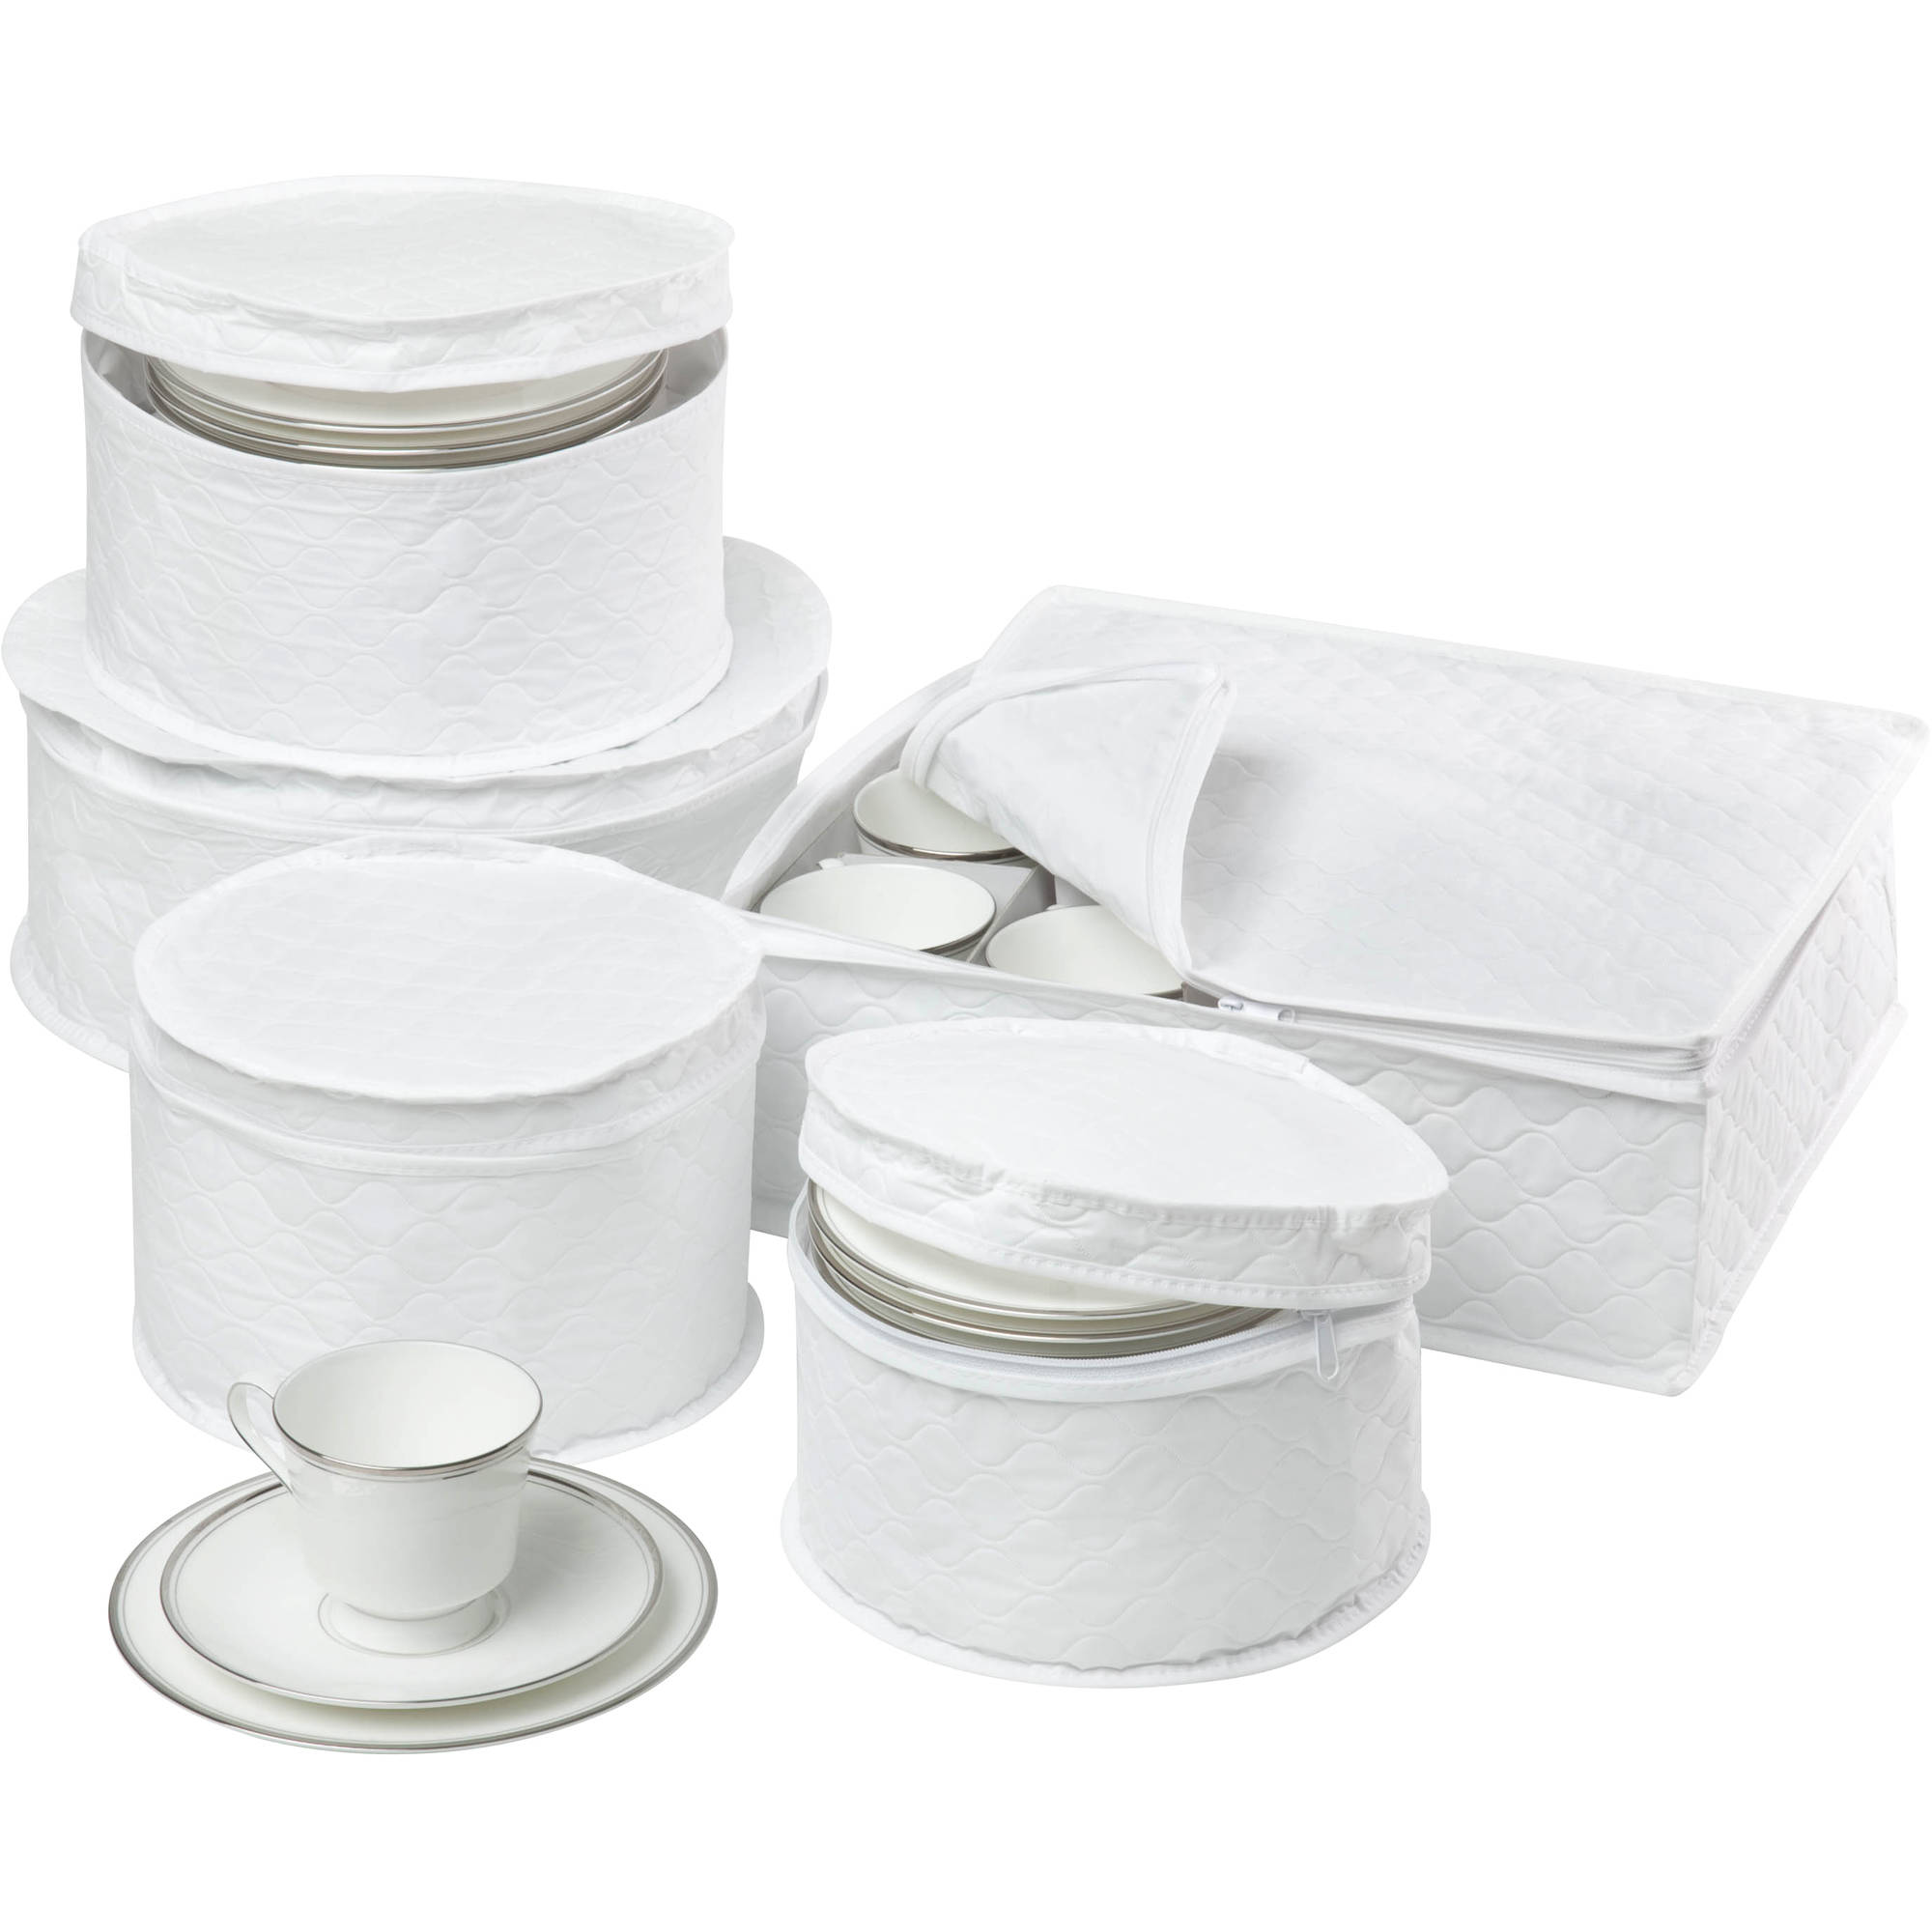 Honey Can Do 5pc Dinnerware Storage Set With Stay Closed Cases, White    Walmart.com